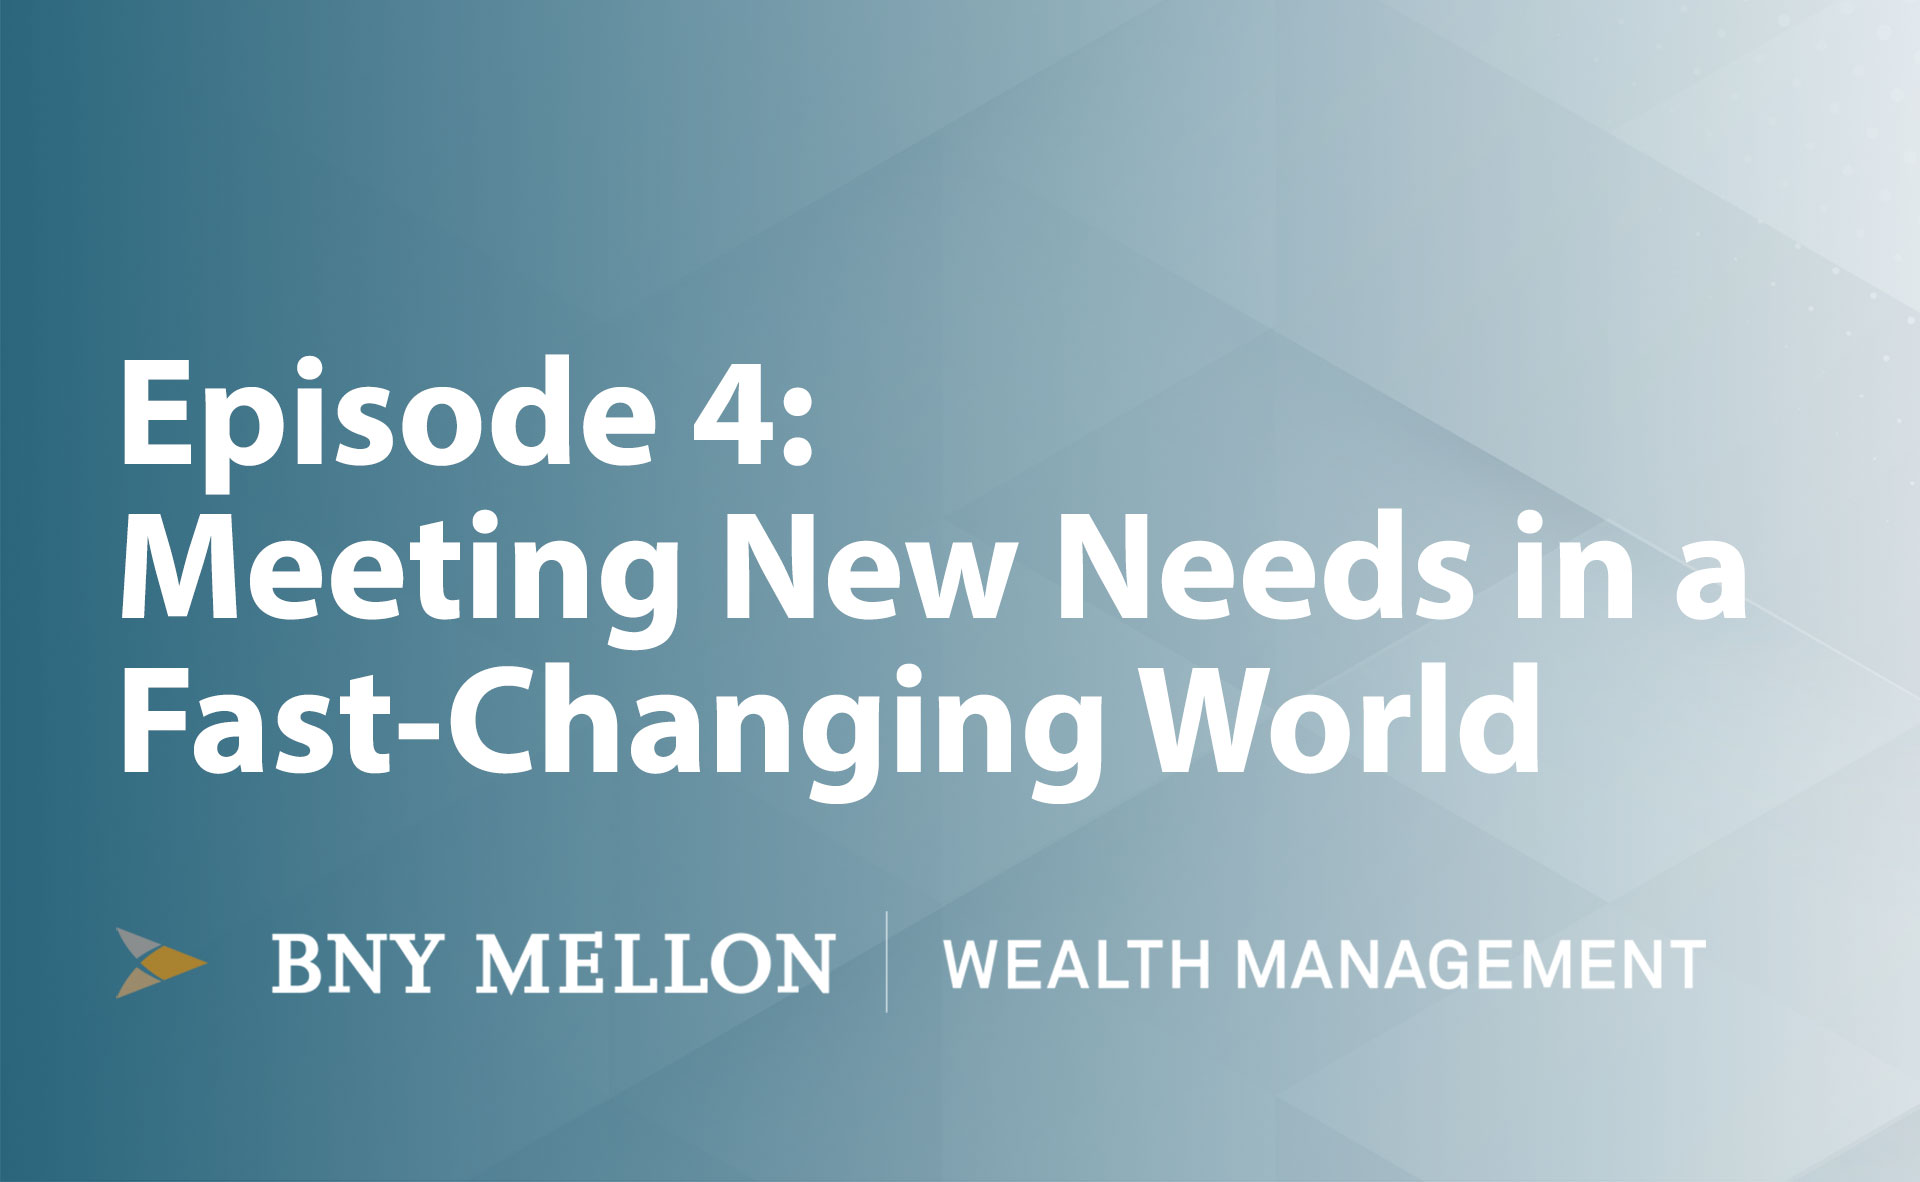 Video:Meeting New Needs in a Fast-Changing World